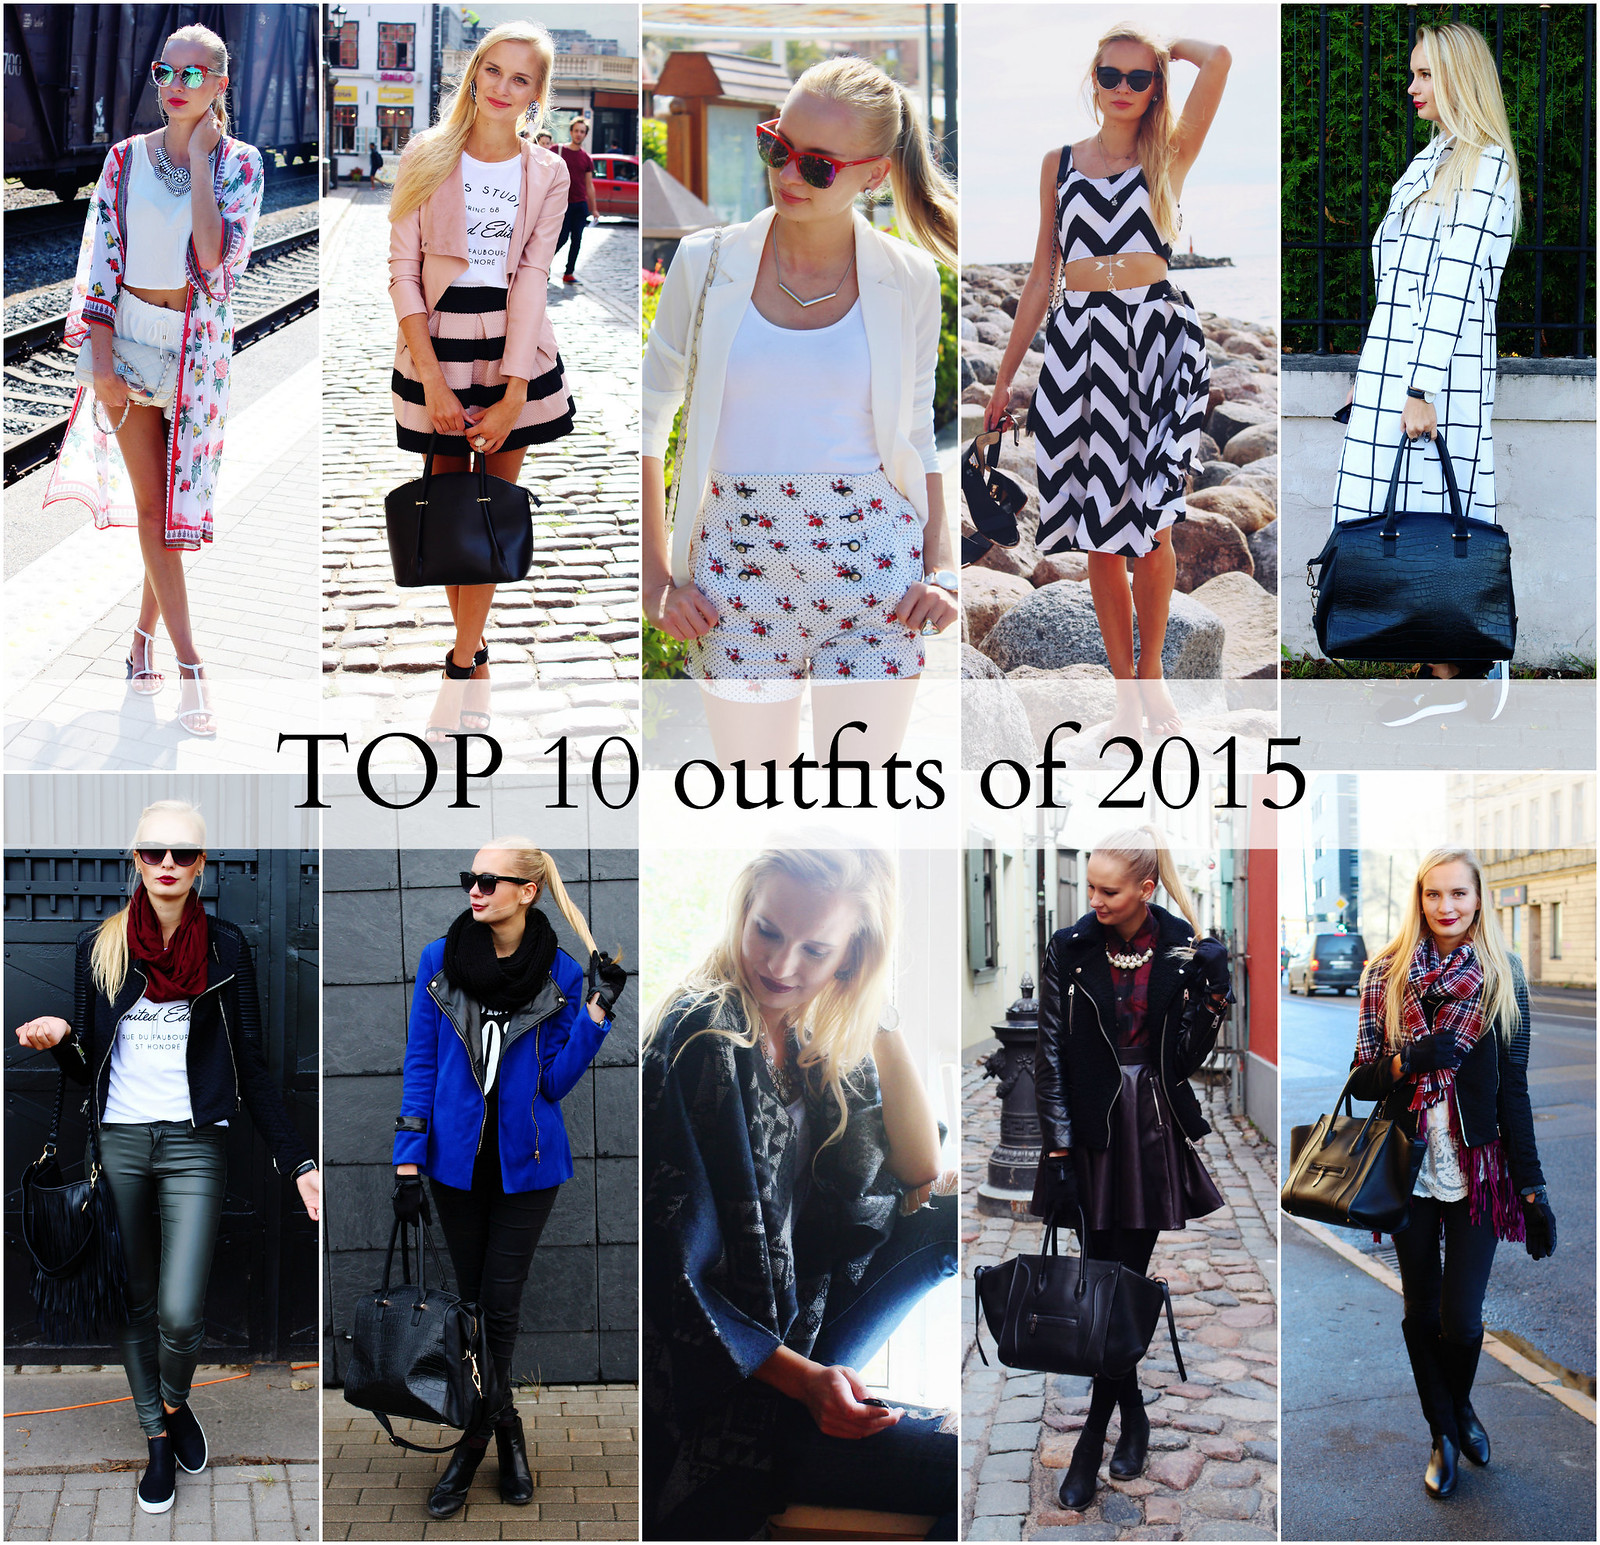 Fashion blogger TOP 10 outfits